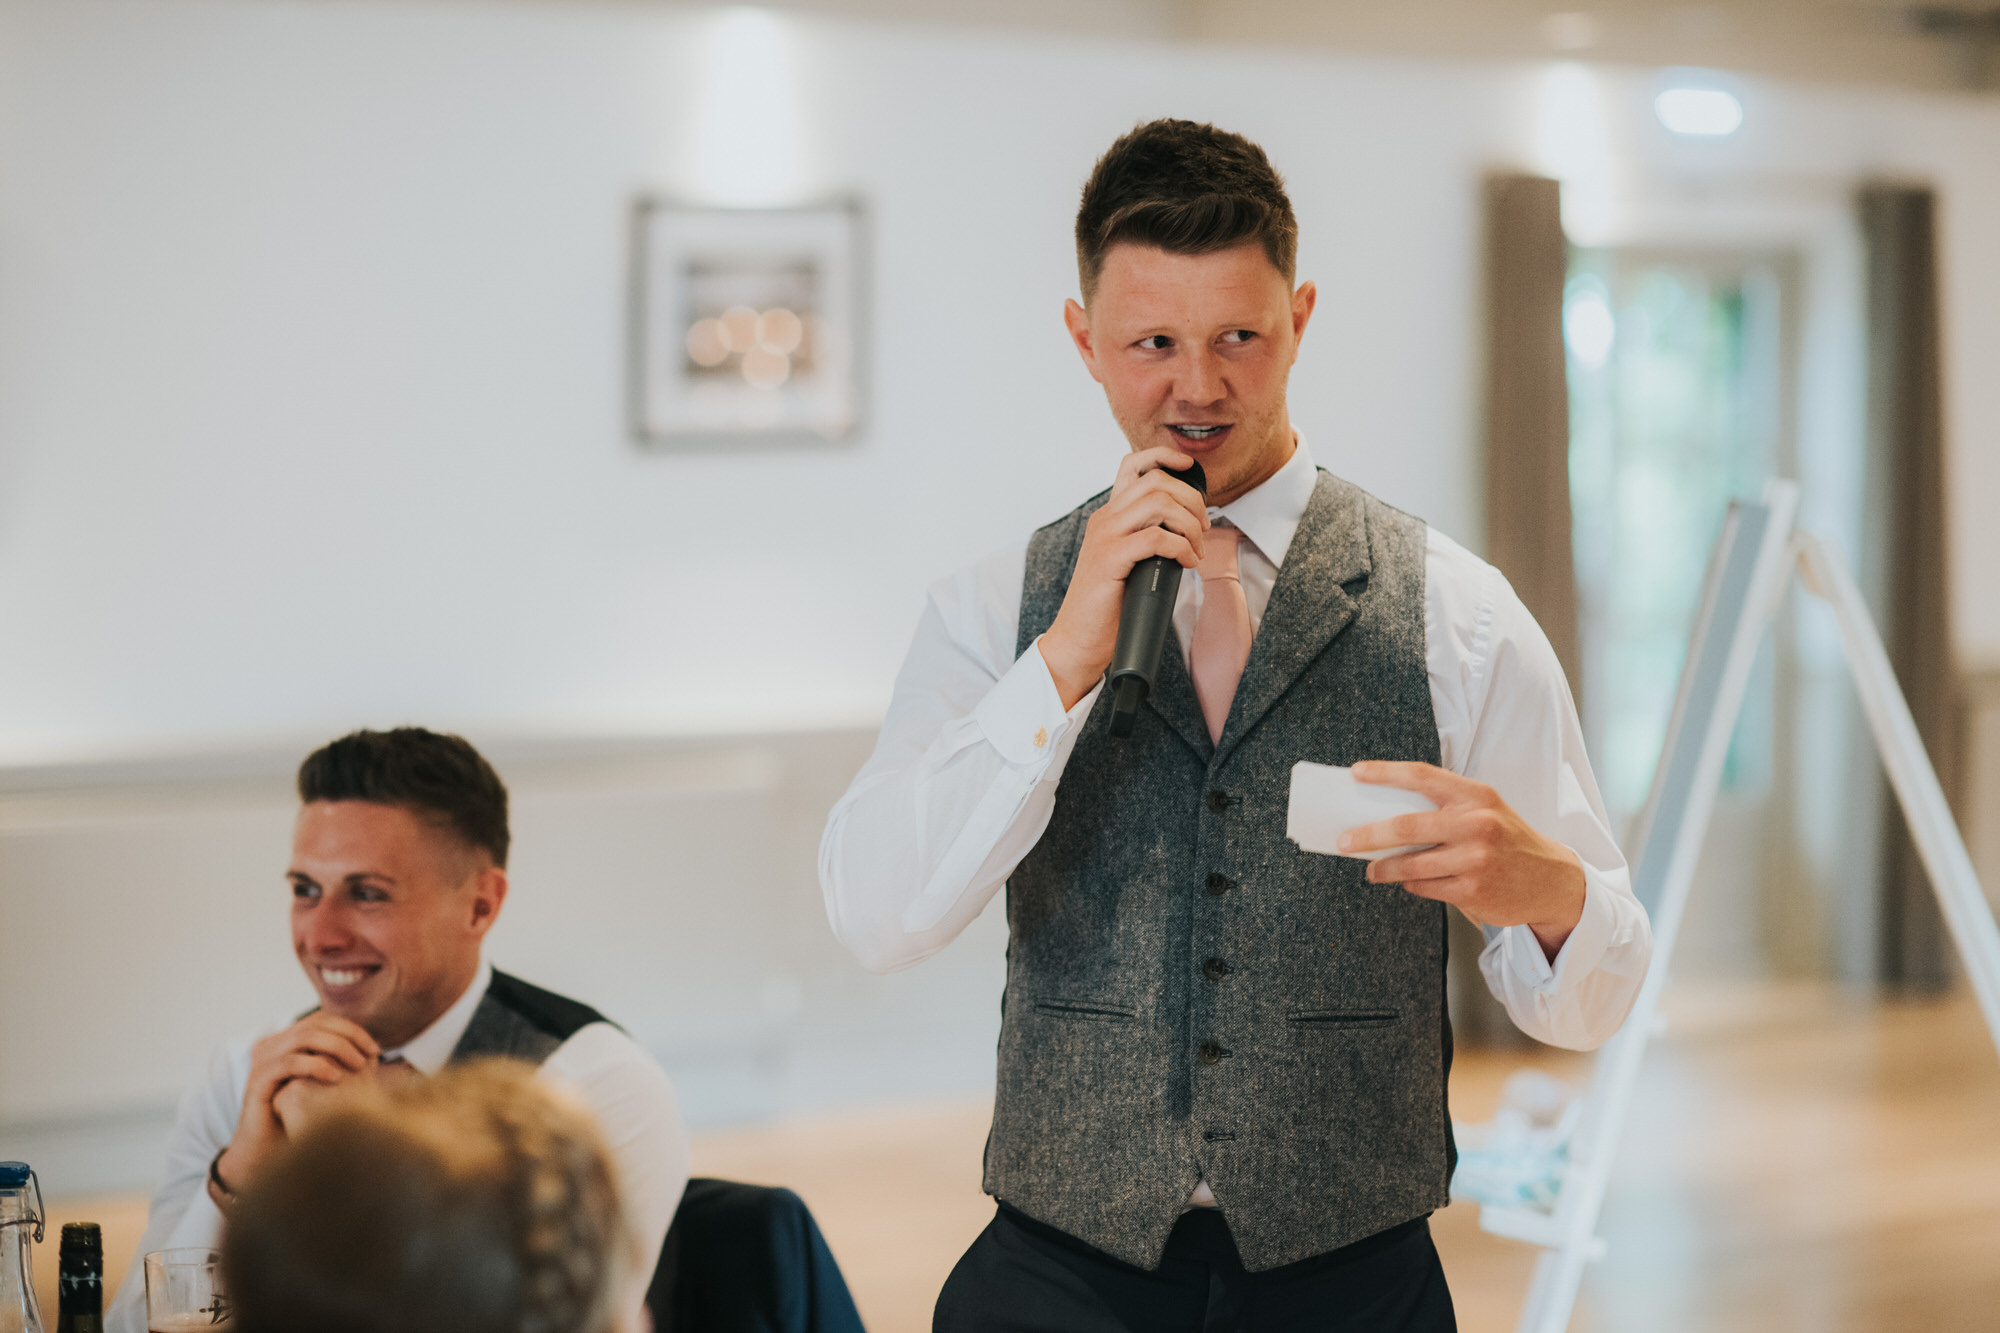 Emlyn hotel wales wedding photographer 48